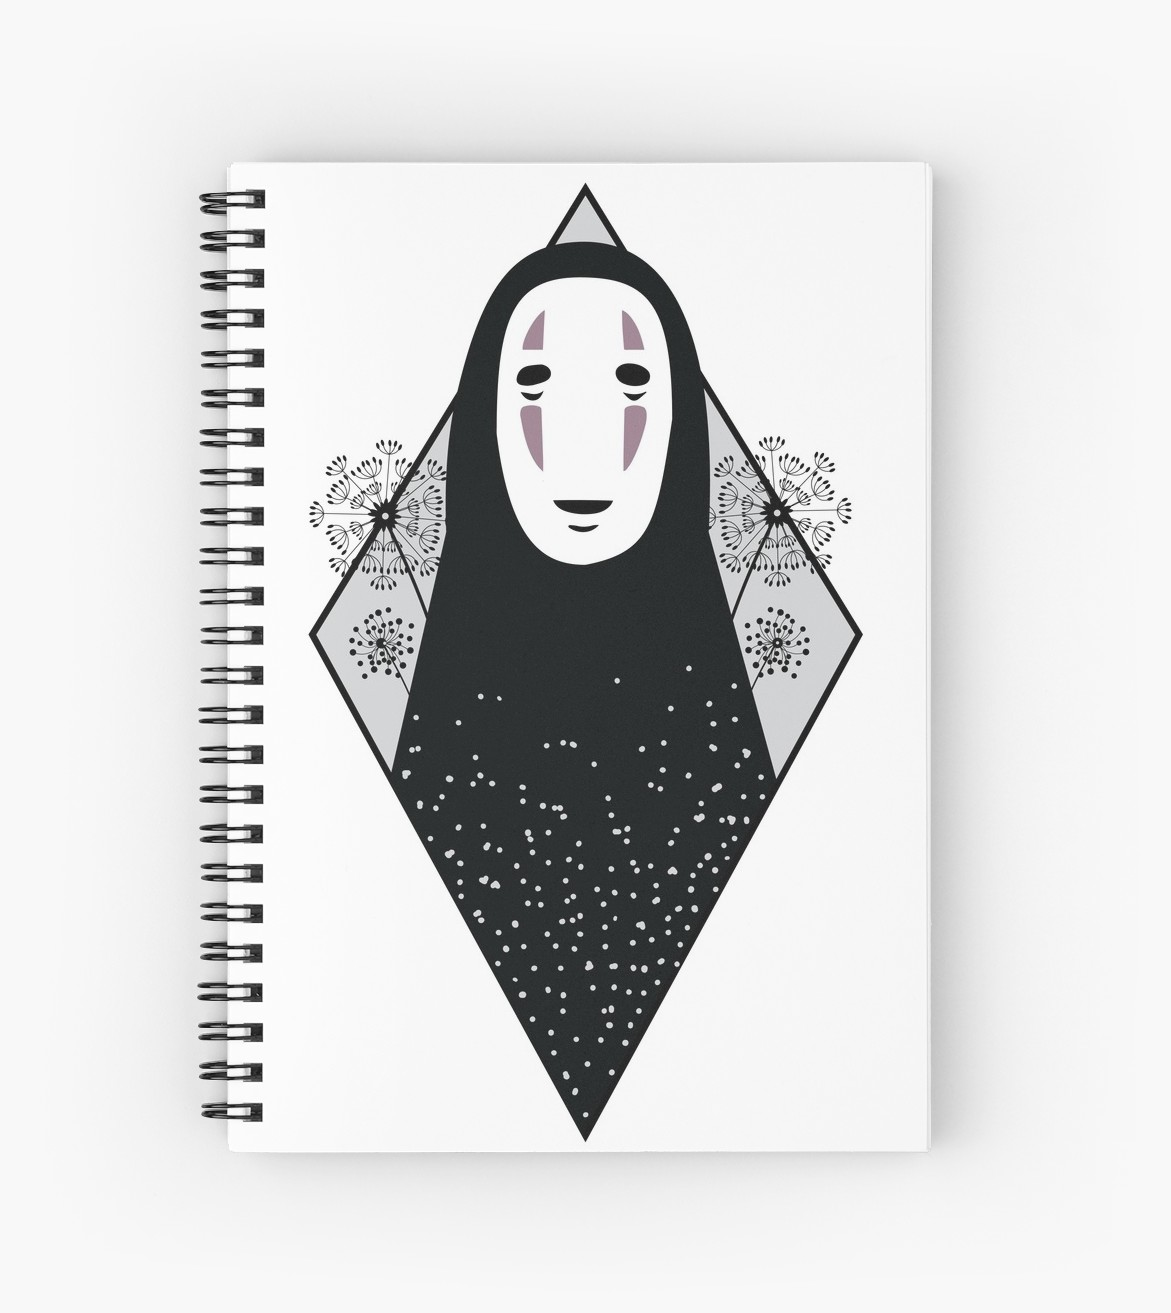 No Face Spirited Away Drawing Google Search Art Inspiration Color Me Mine Drawings